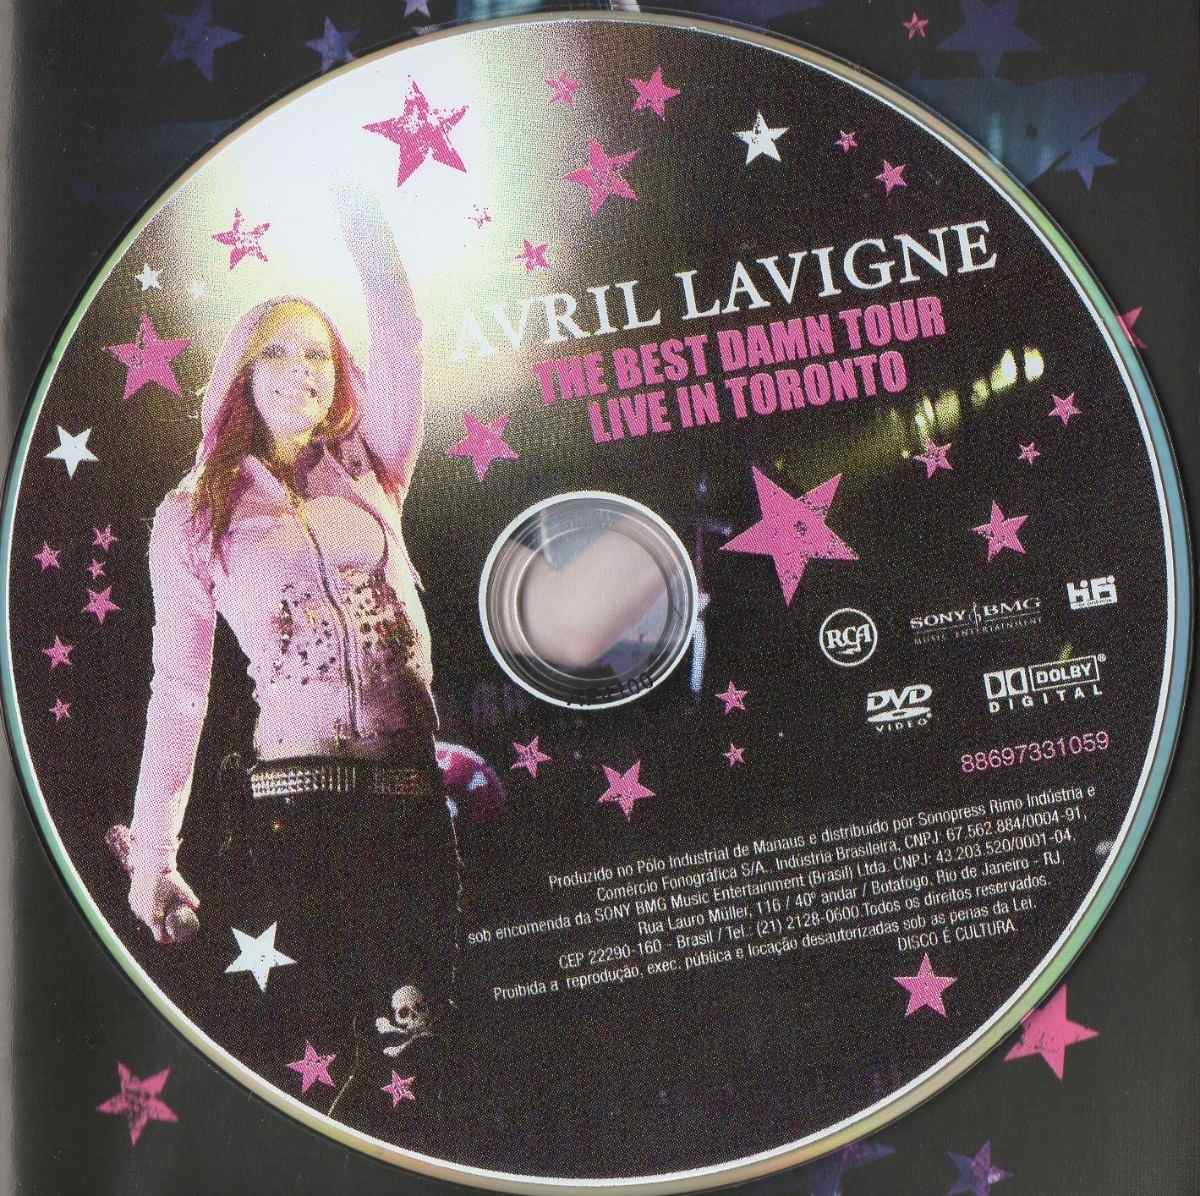 The best damn thing avril lavigne live